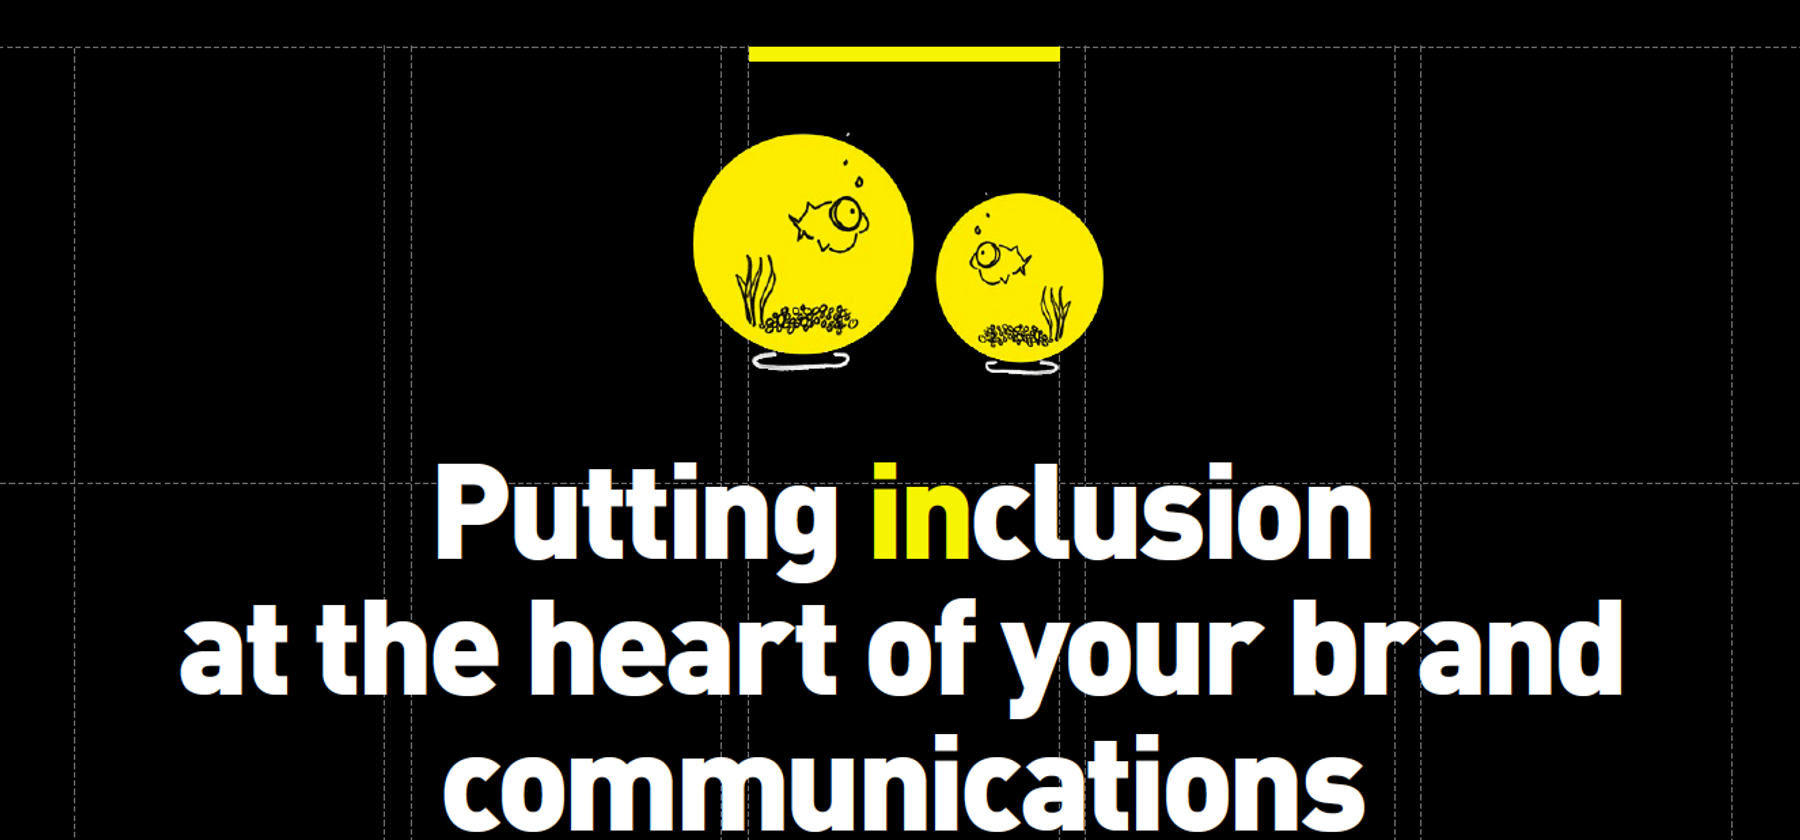 Putting inclusion at the heart of your brand communications